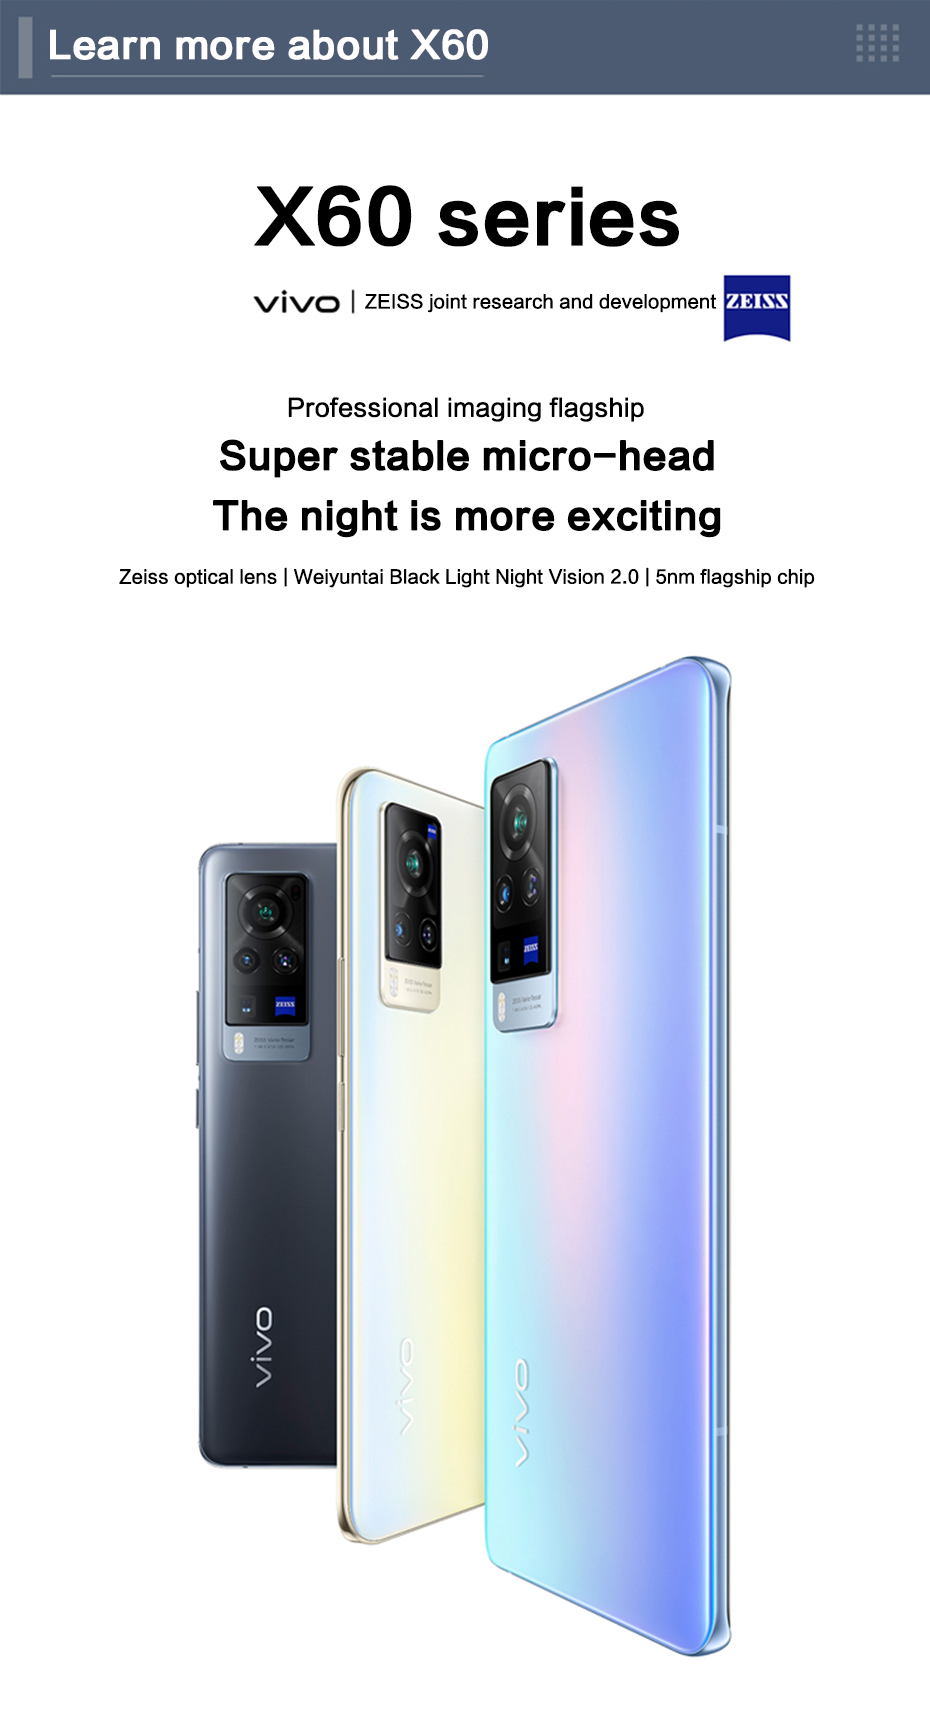 Original New Vivo X60 Pro 5G Cell Phone Exynos 1080 7.36mm Thick Core 6.56inch AMOLED 120Hz Rate Reflash 48.0MP Camera Mobile